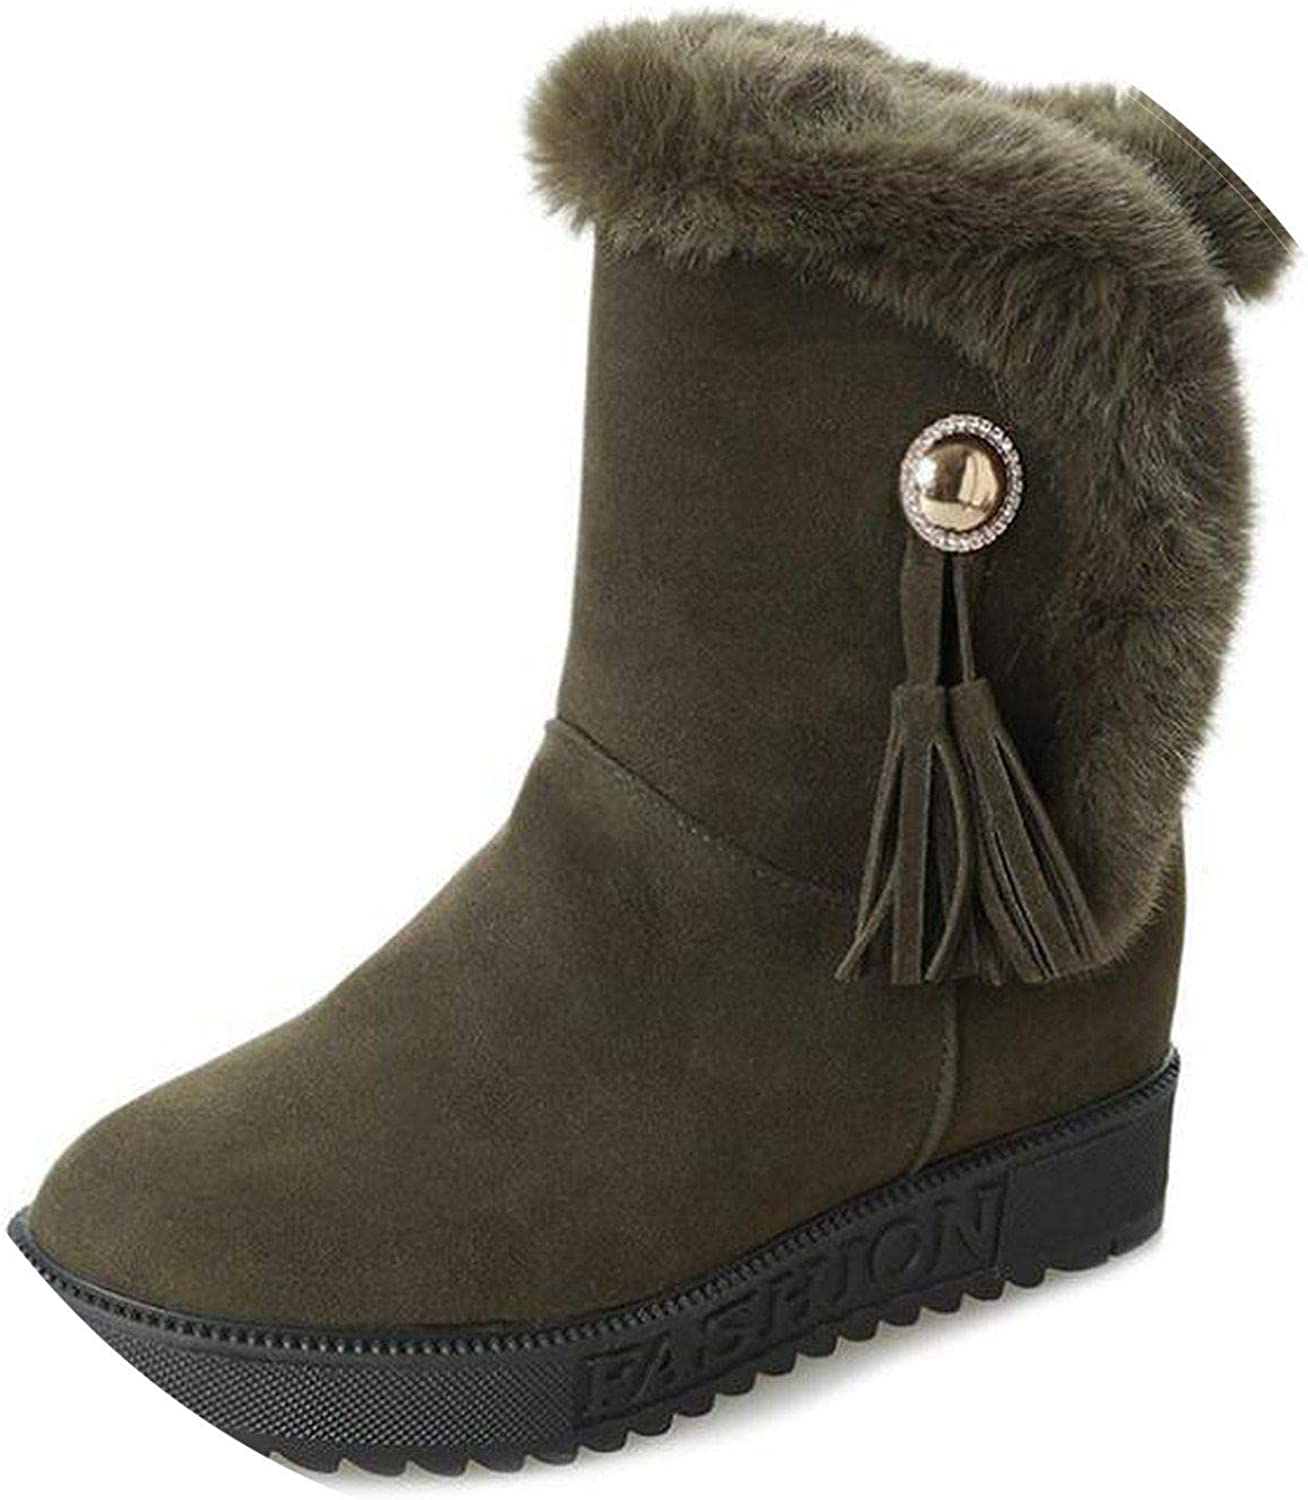 Summer-lavender Tassels Women shoes Warm add Cotton Ankle Boots Buckle Solid Martin Boots Winter Snow Boots